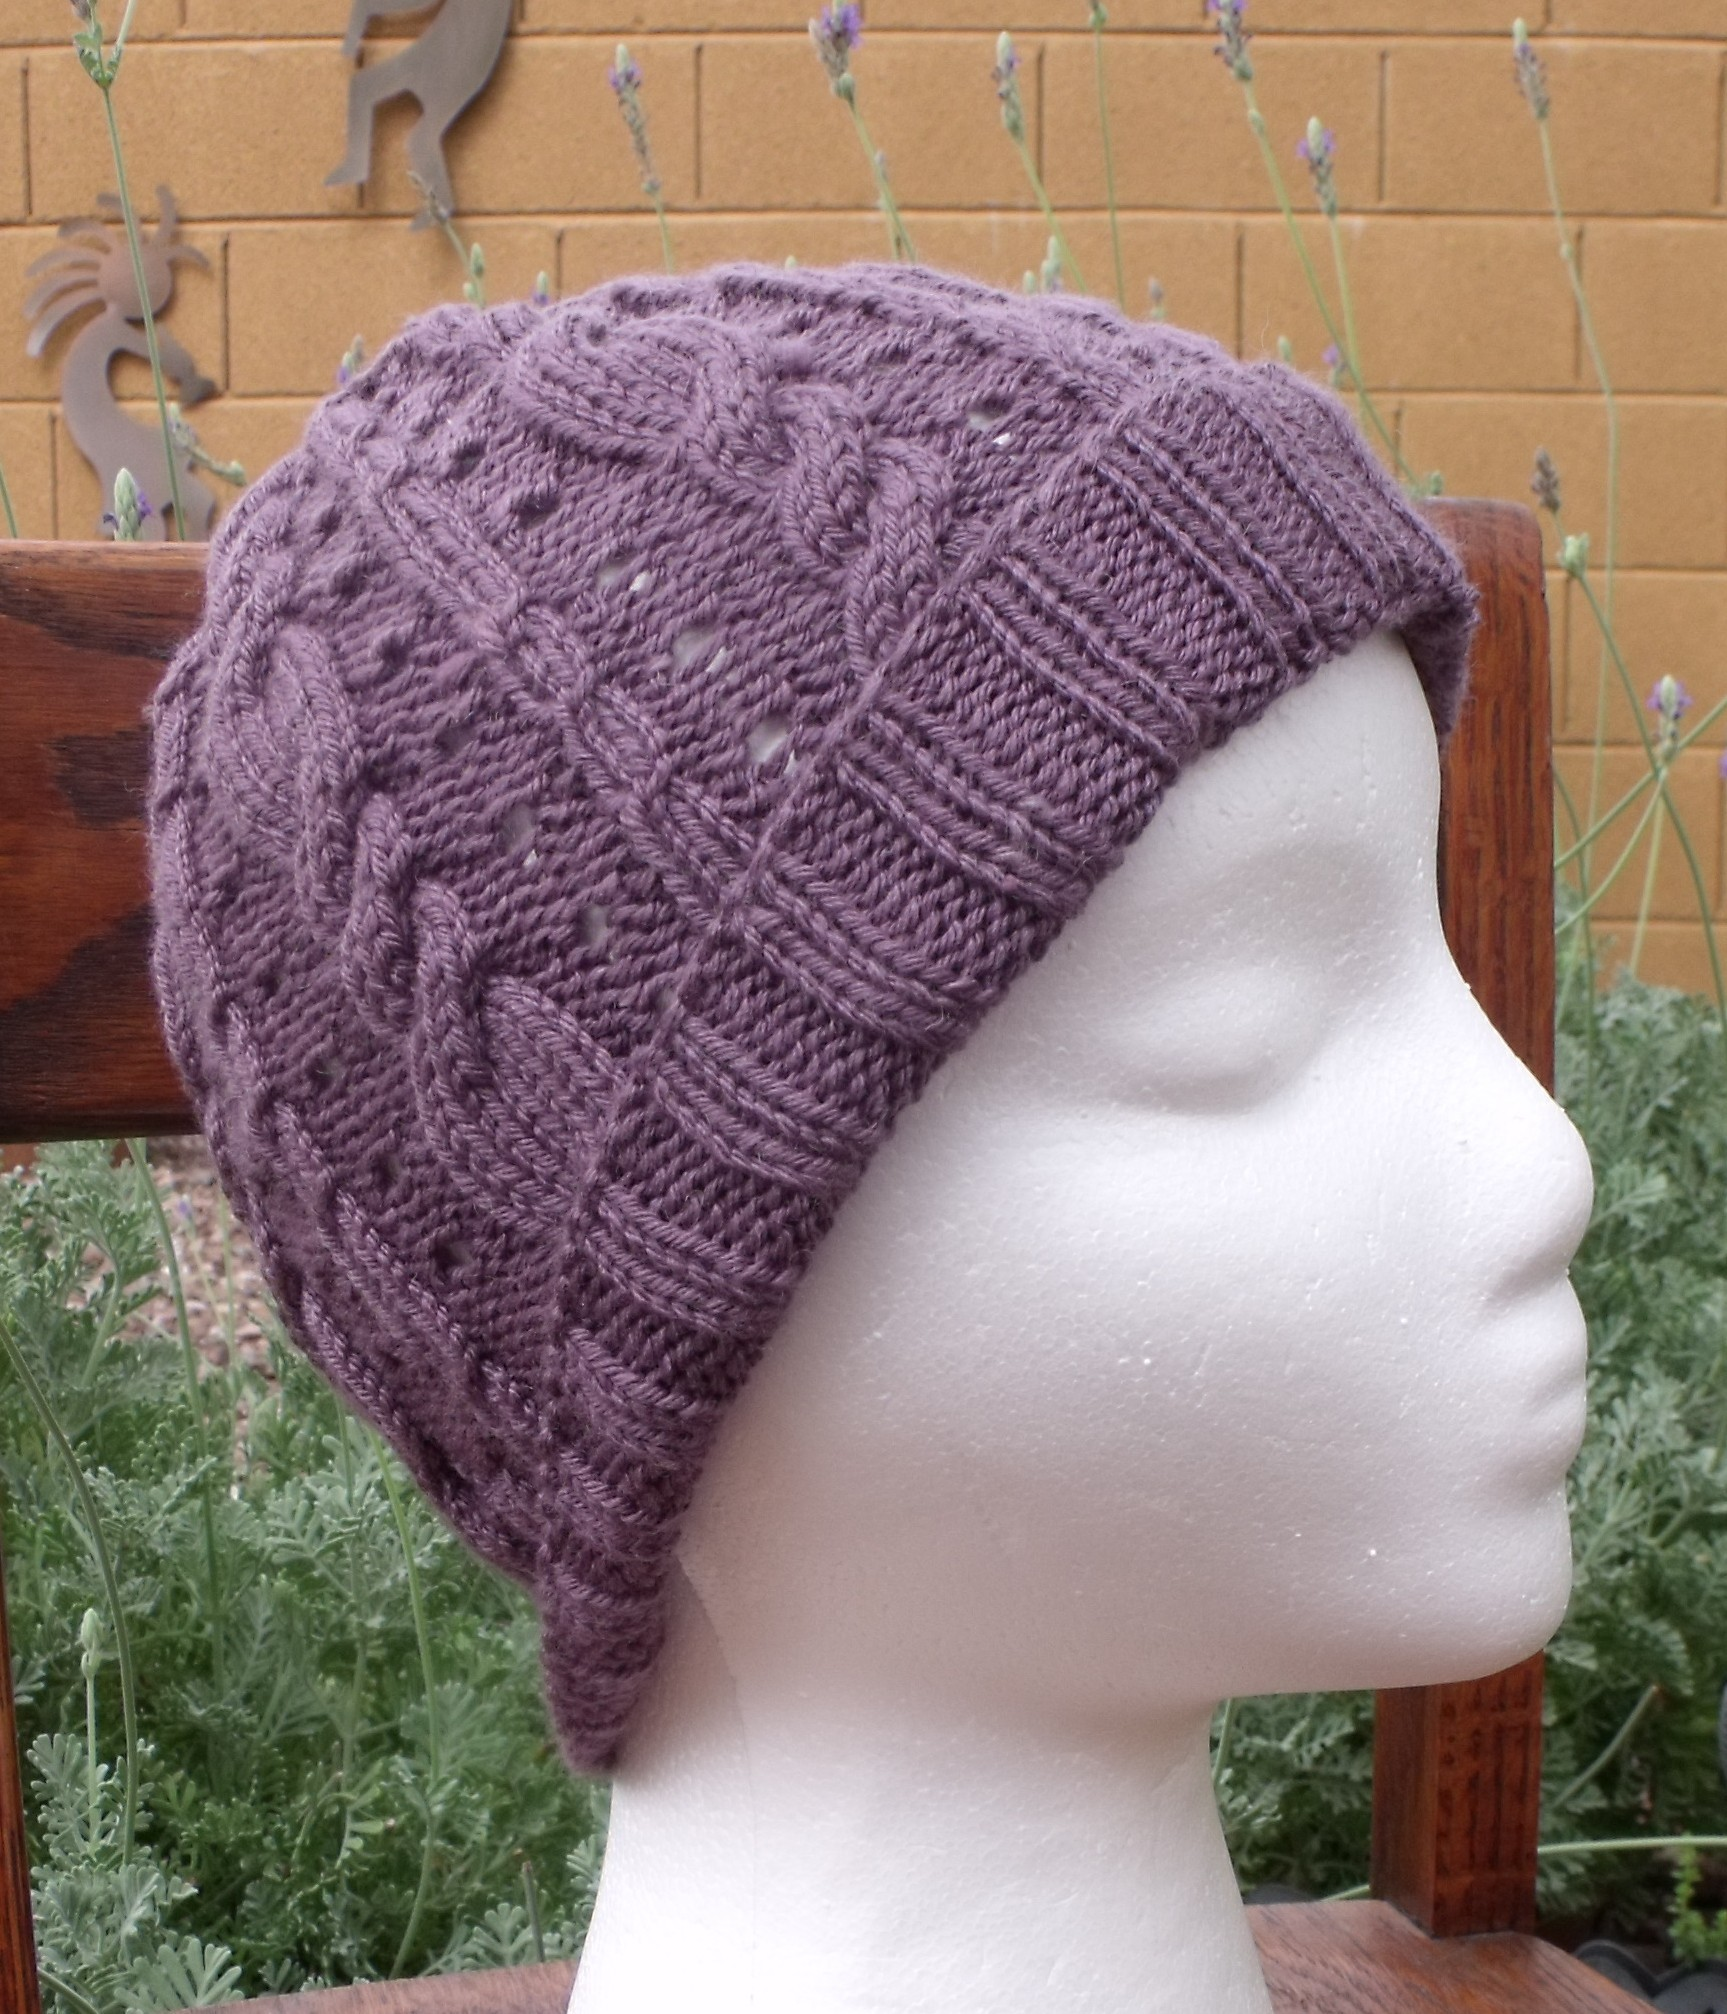 Sideways Knitting Patterns Free : Knitting Patterns Free Hats images